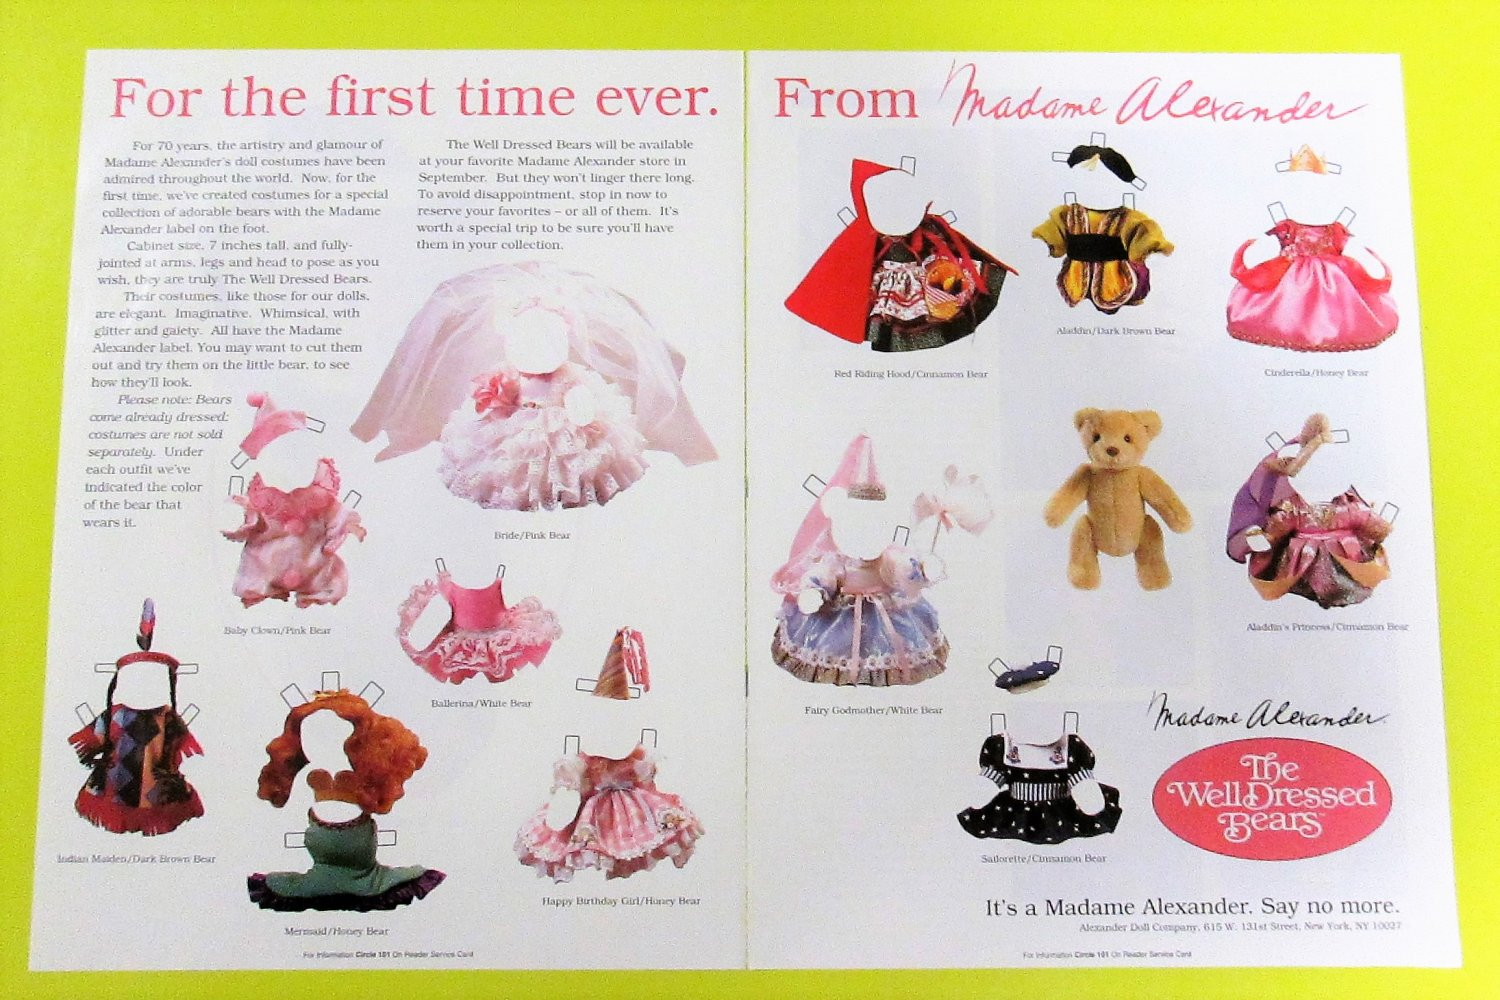 THE WELL DRESSED BEARS Magazine Paper Dolls by Madame Alexander